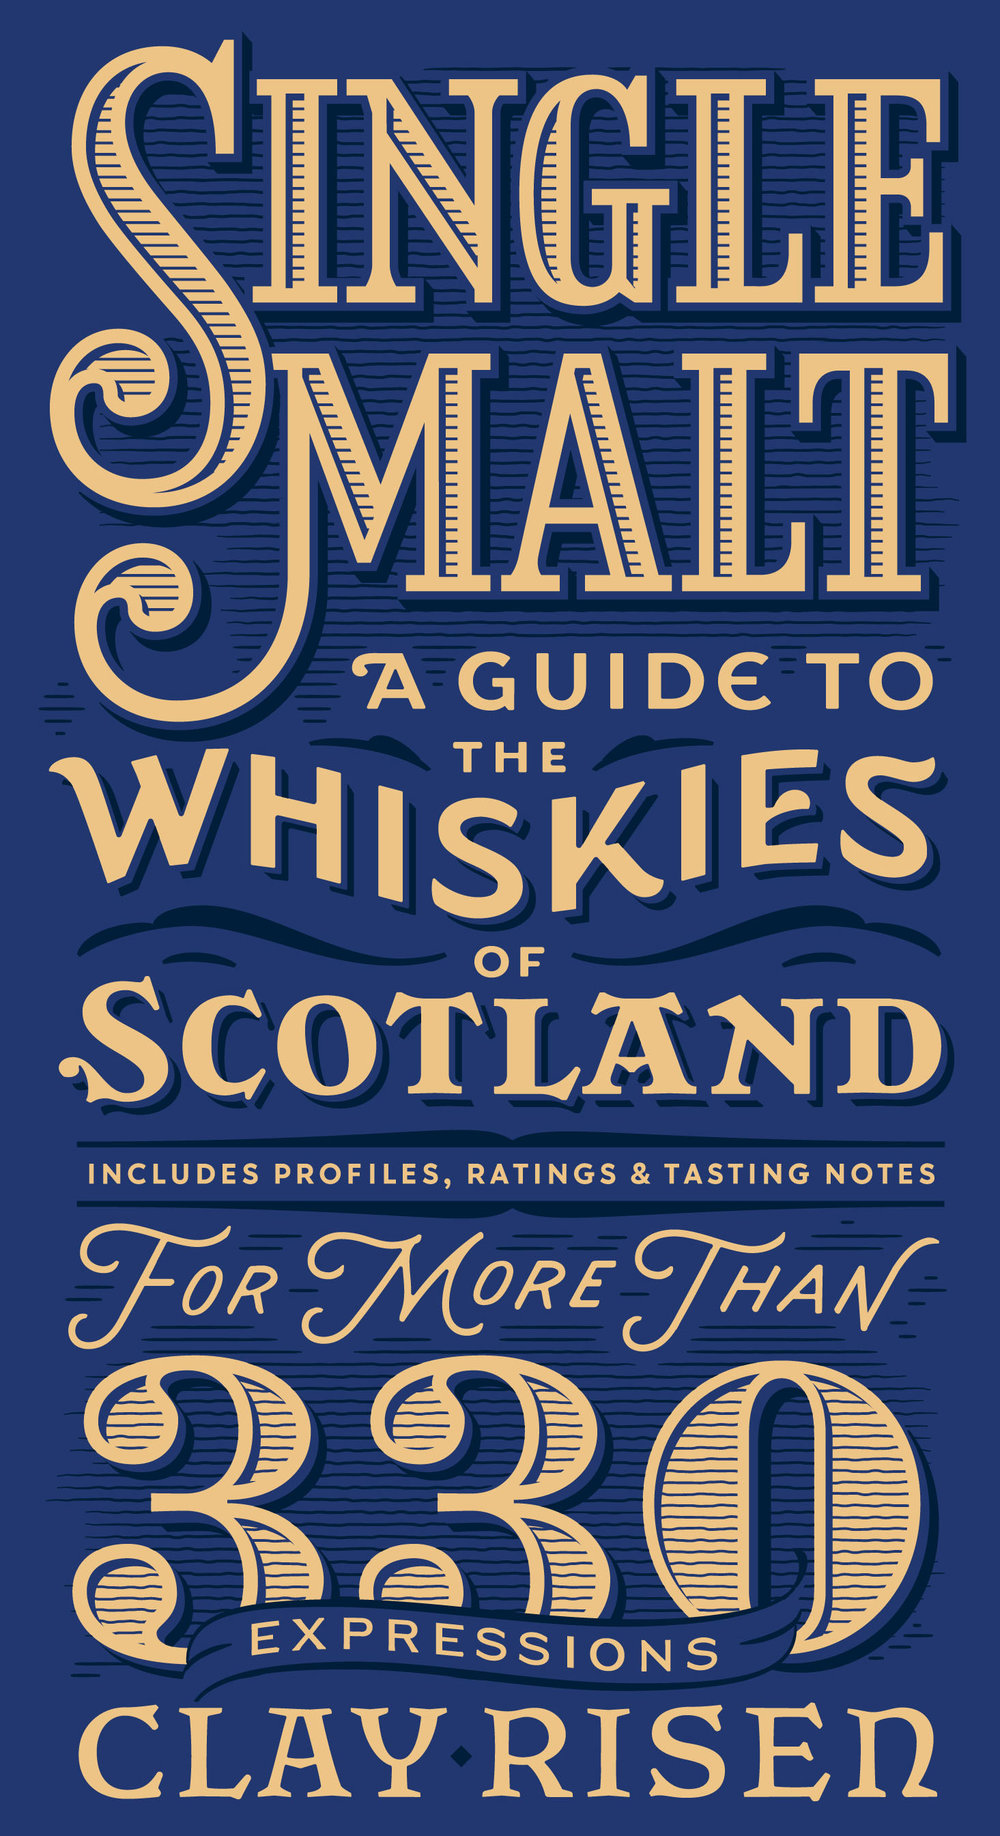 "Single Malt: A Guide to the Whiskies of Scotland - Critical Acclaim""Risen's entries go deep, enabling readers to find the bottle that's right for them or a friend...[r]egardless of where the whiskeys fall on the single malt spectrum, Risen and his tasting panel have created a definitive reference on the topic. This is a must-have guide for novices and aficionados alike."" —Publisher's Weekly(starred review)Over the past five centuries, Scots have used malted barley, stills, and clear cold water to create a sublimely complex drink. More than 110 distilleries are active today in Scotland, bottling hundreds of single malt expressions for export all over the world. Now, from the author of the spirits bestseller American Whiskey, Bourbon & Rye, comes a new essential guide. Organized by distillery, each section features a profile of the maker and individual accounts of each core bottling, including information on age, proof, nose, body, palate, and price, plus an overall rating. The introduction provides a short history of the Scottish spirit, how it's made, and how to enjoy it. Featuring more than 330 single malts, Risen has created the ideal companion for anyone who loves whisky and would like to know more. Slàinte!Hardcover: 328 pagesPublisher: A Scott & Nix/Quercus EditionSize: 5 x 9 inchesISBN: 978-1-681441-07-8Price: $29.99Preorder now at the following commerce sites or at your favorite bookstore today!AMAZONB&NINDIEBOUNDCopies signed by the author available for preorder atSCOTT & NIX, INC."